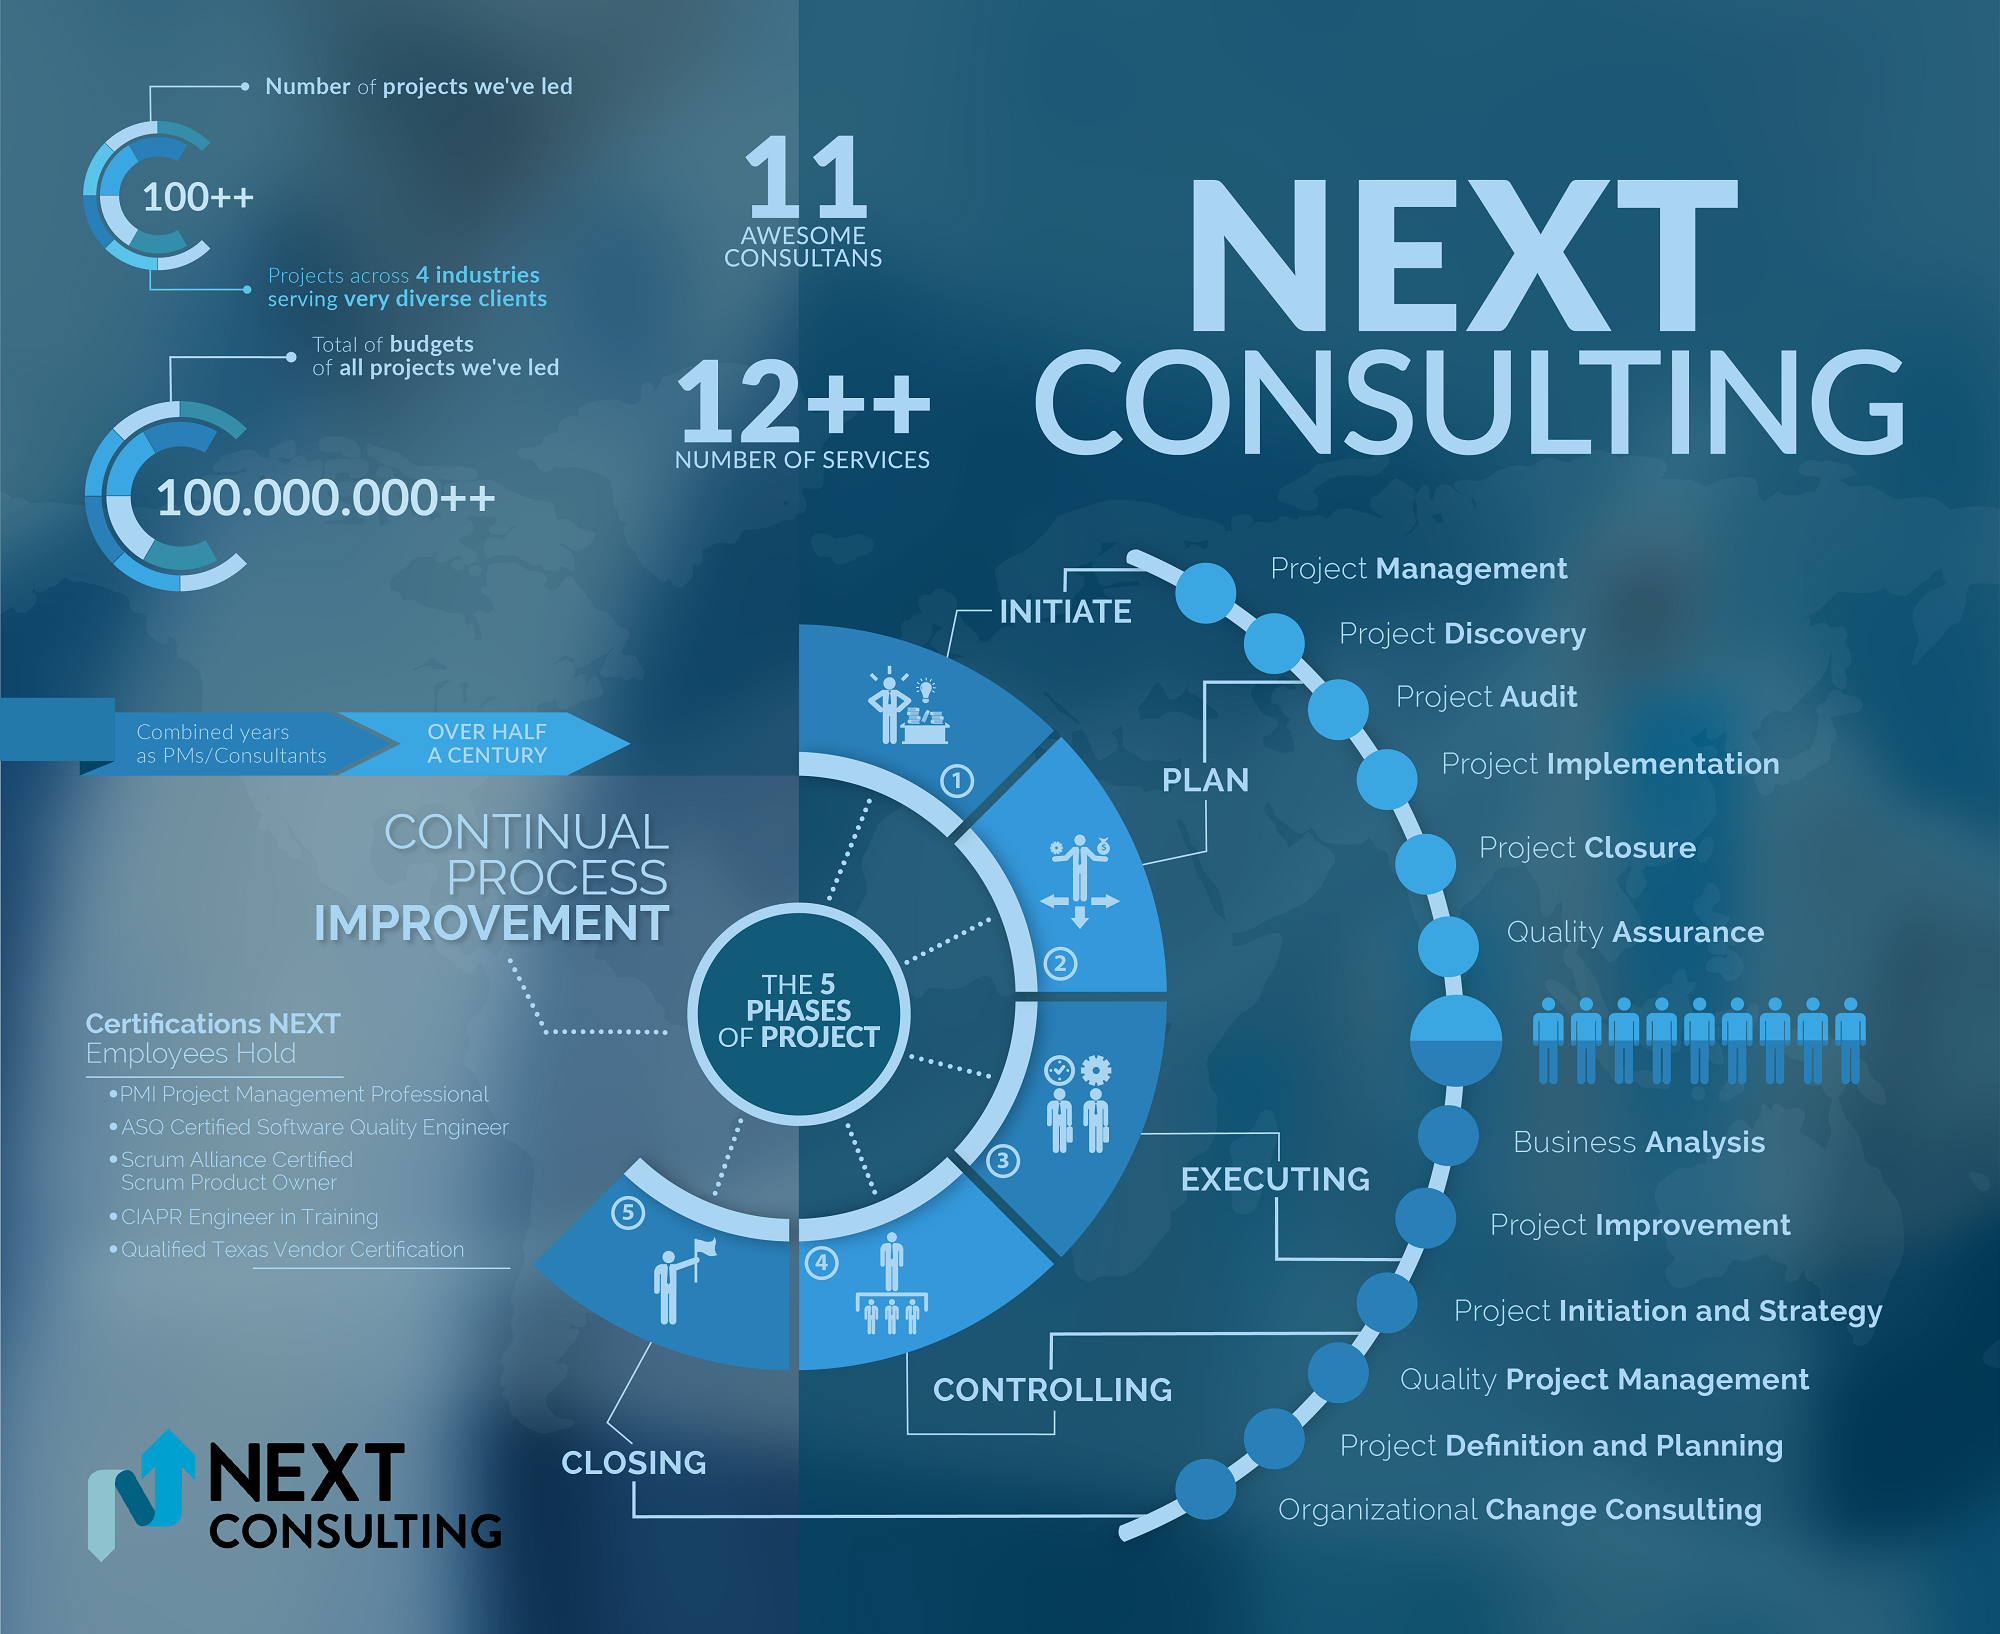 infographic consulting for next consulting,llc. #infographic